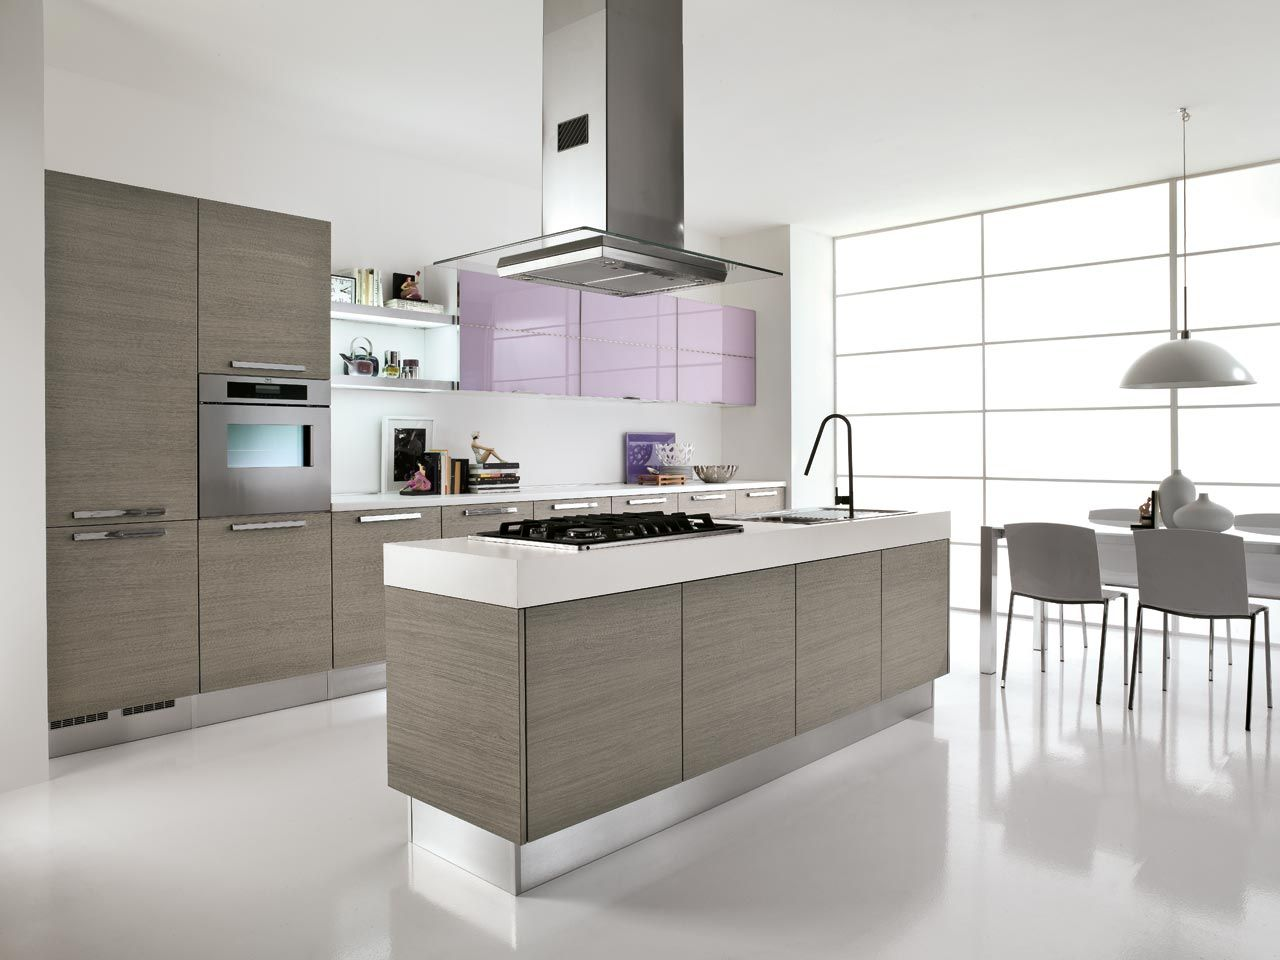 Alessia - Kitchens - Cucine Lube | Home sweet home | Cucine ...